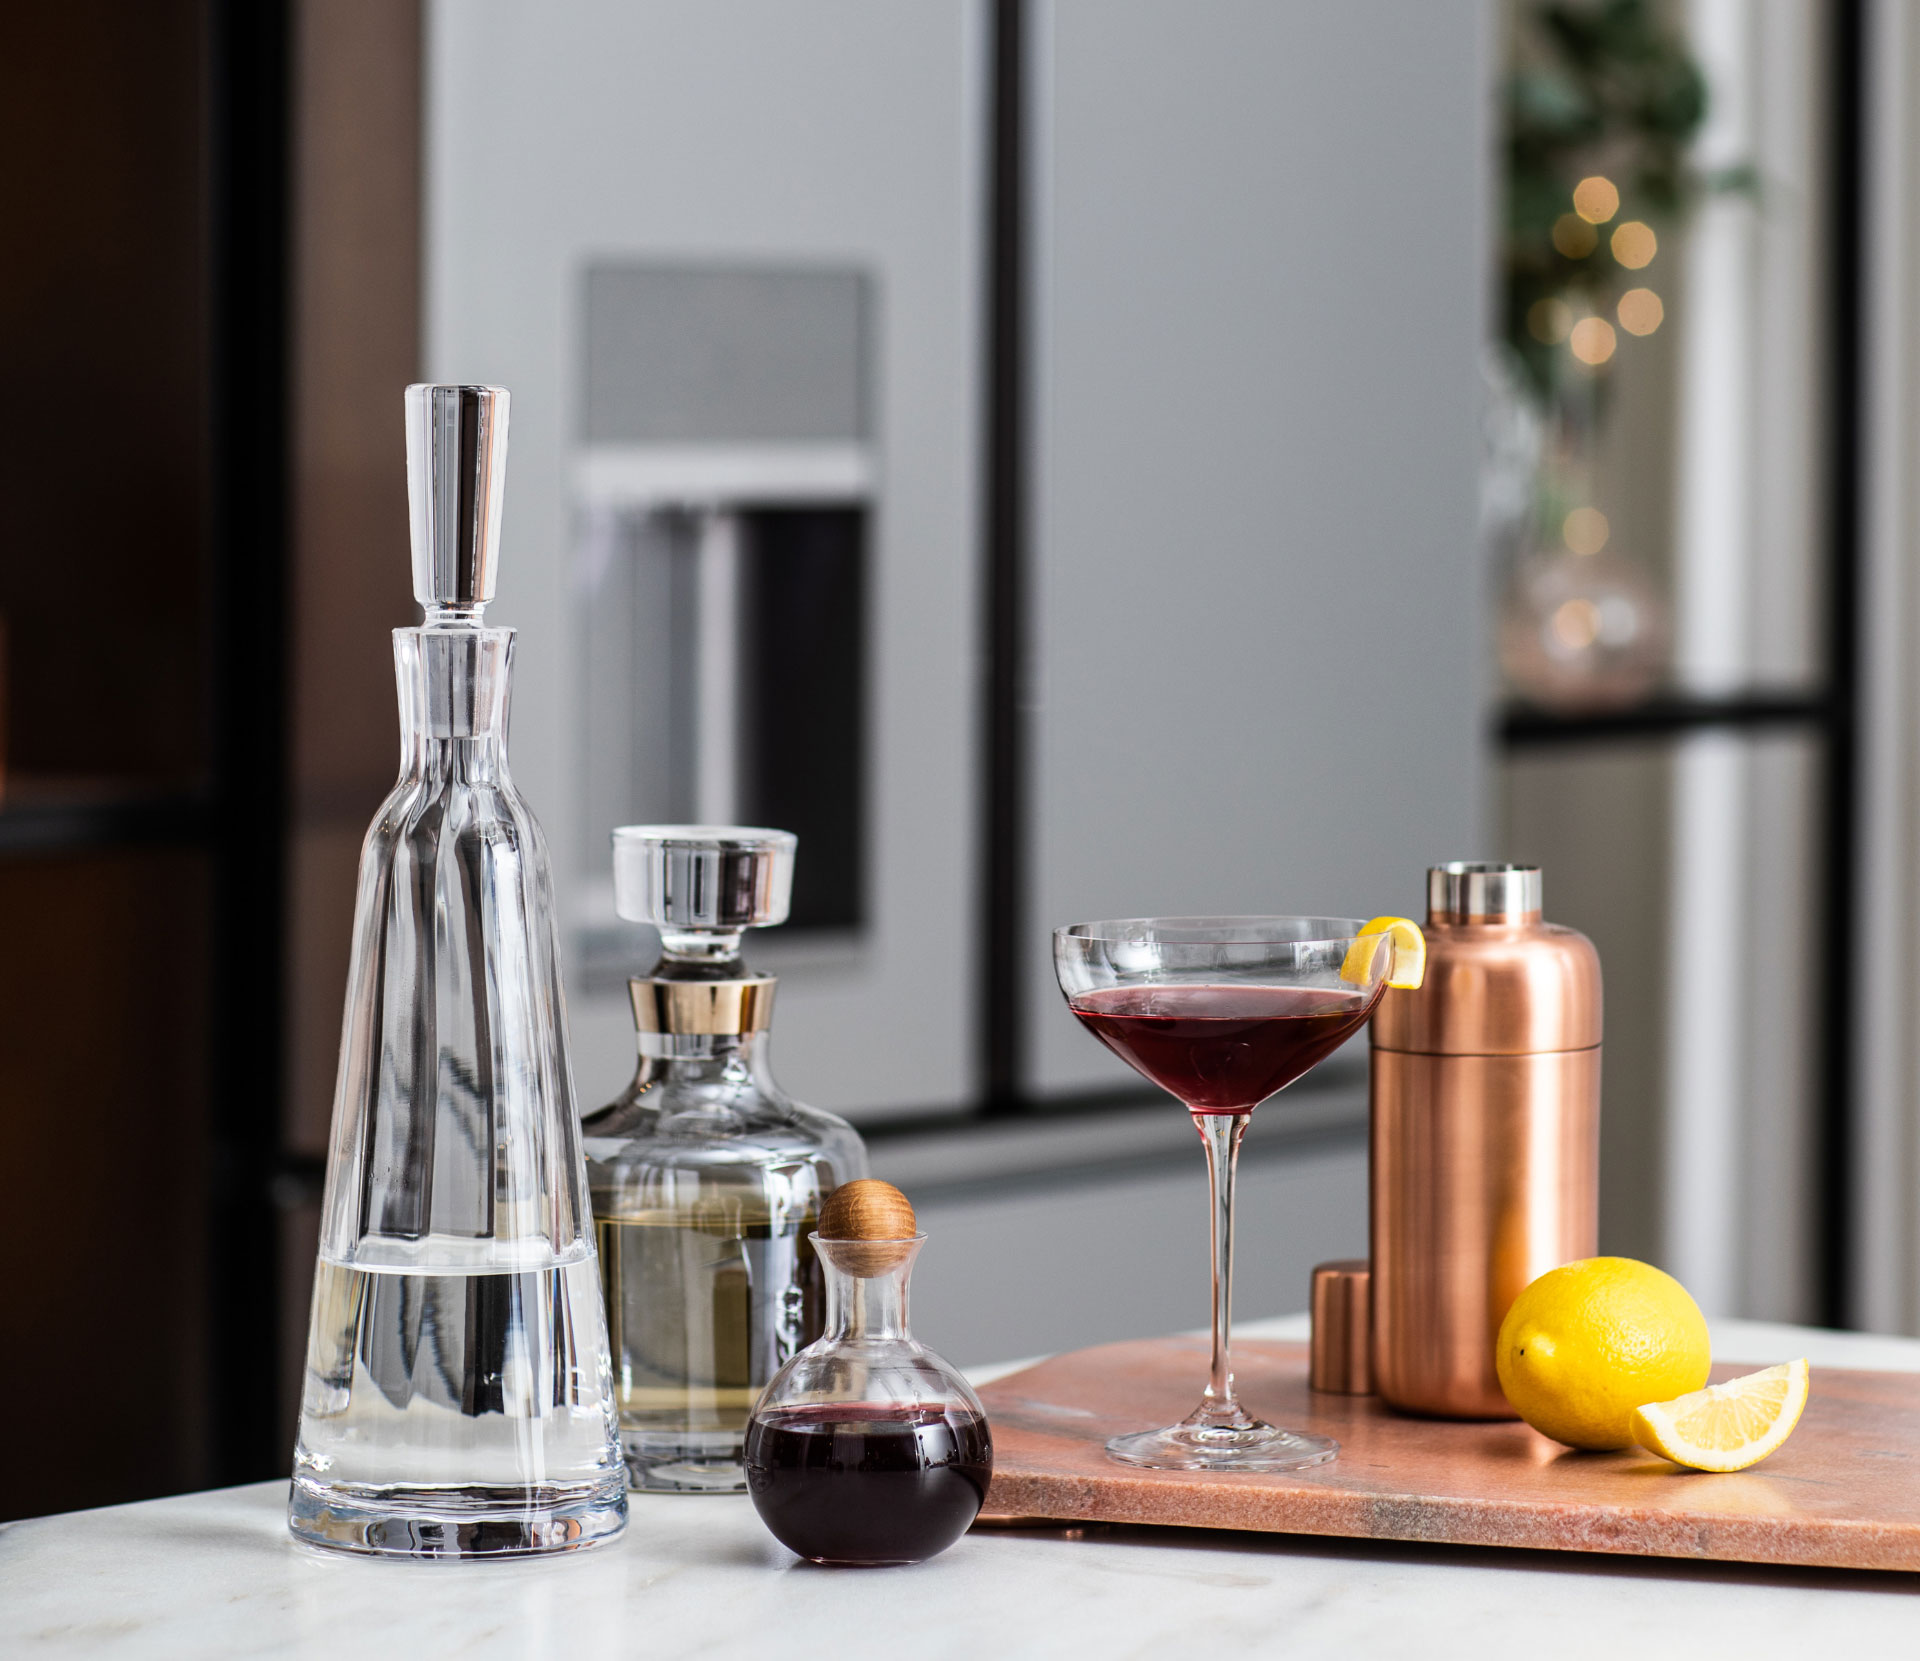 Cocktails in front of the Modern Glass refrigerator